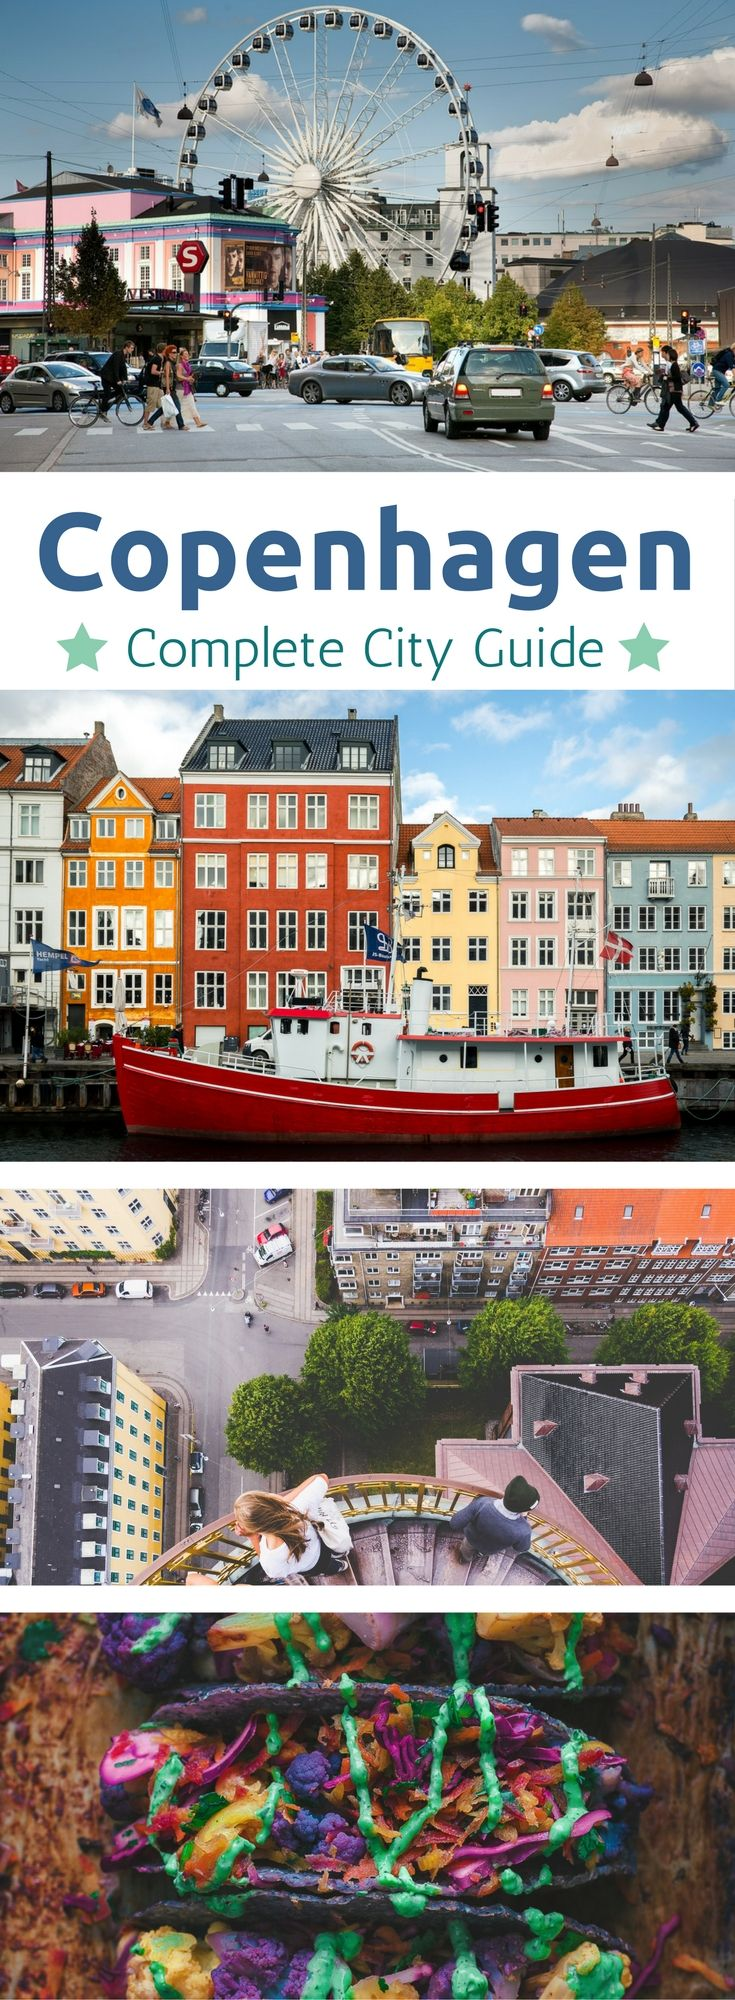 Where to go, what to see, do and eat in the Danish capital of Copenhagen. All the insider information and top tips to make the most of your trip #Copenhagen #citybreak